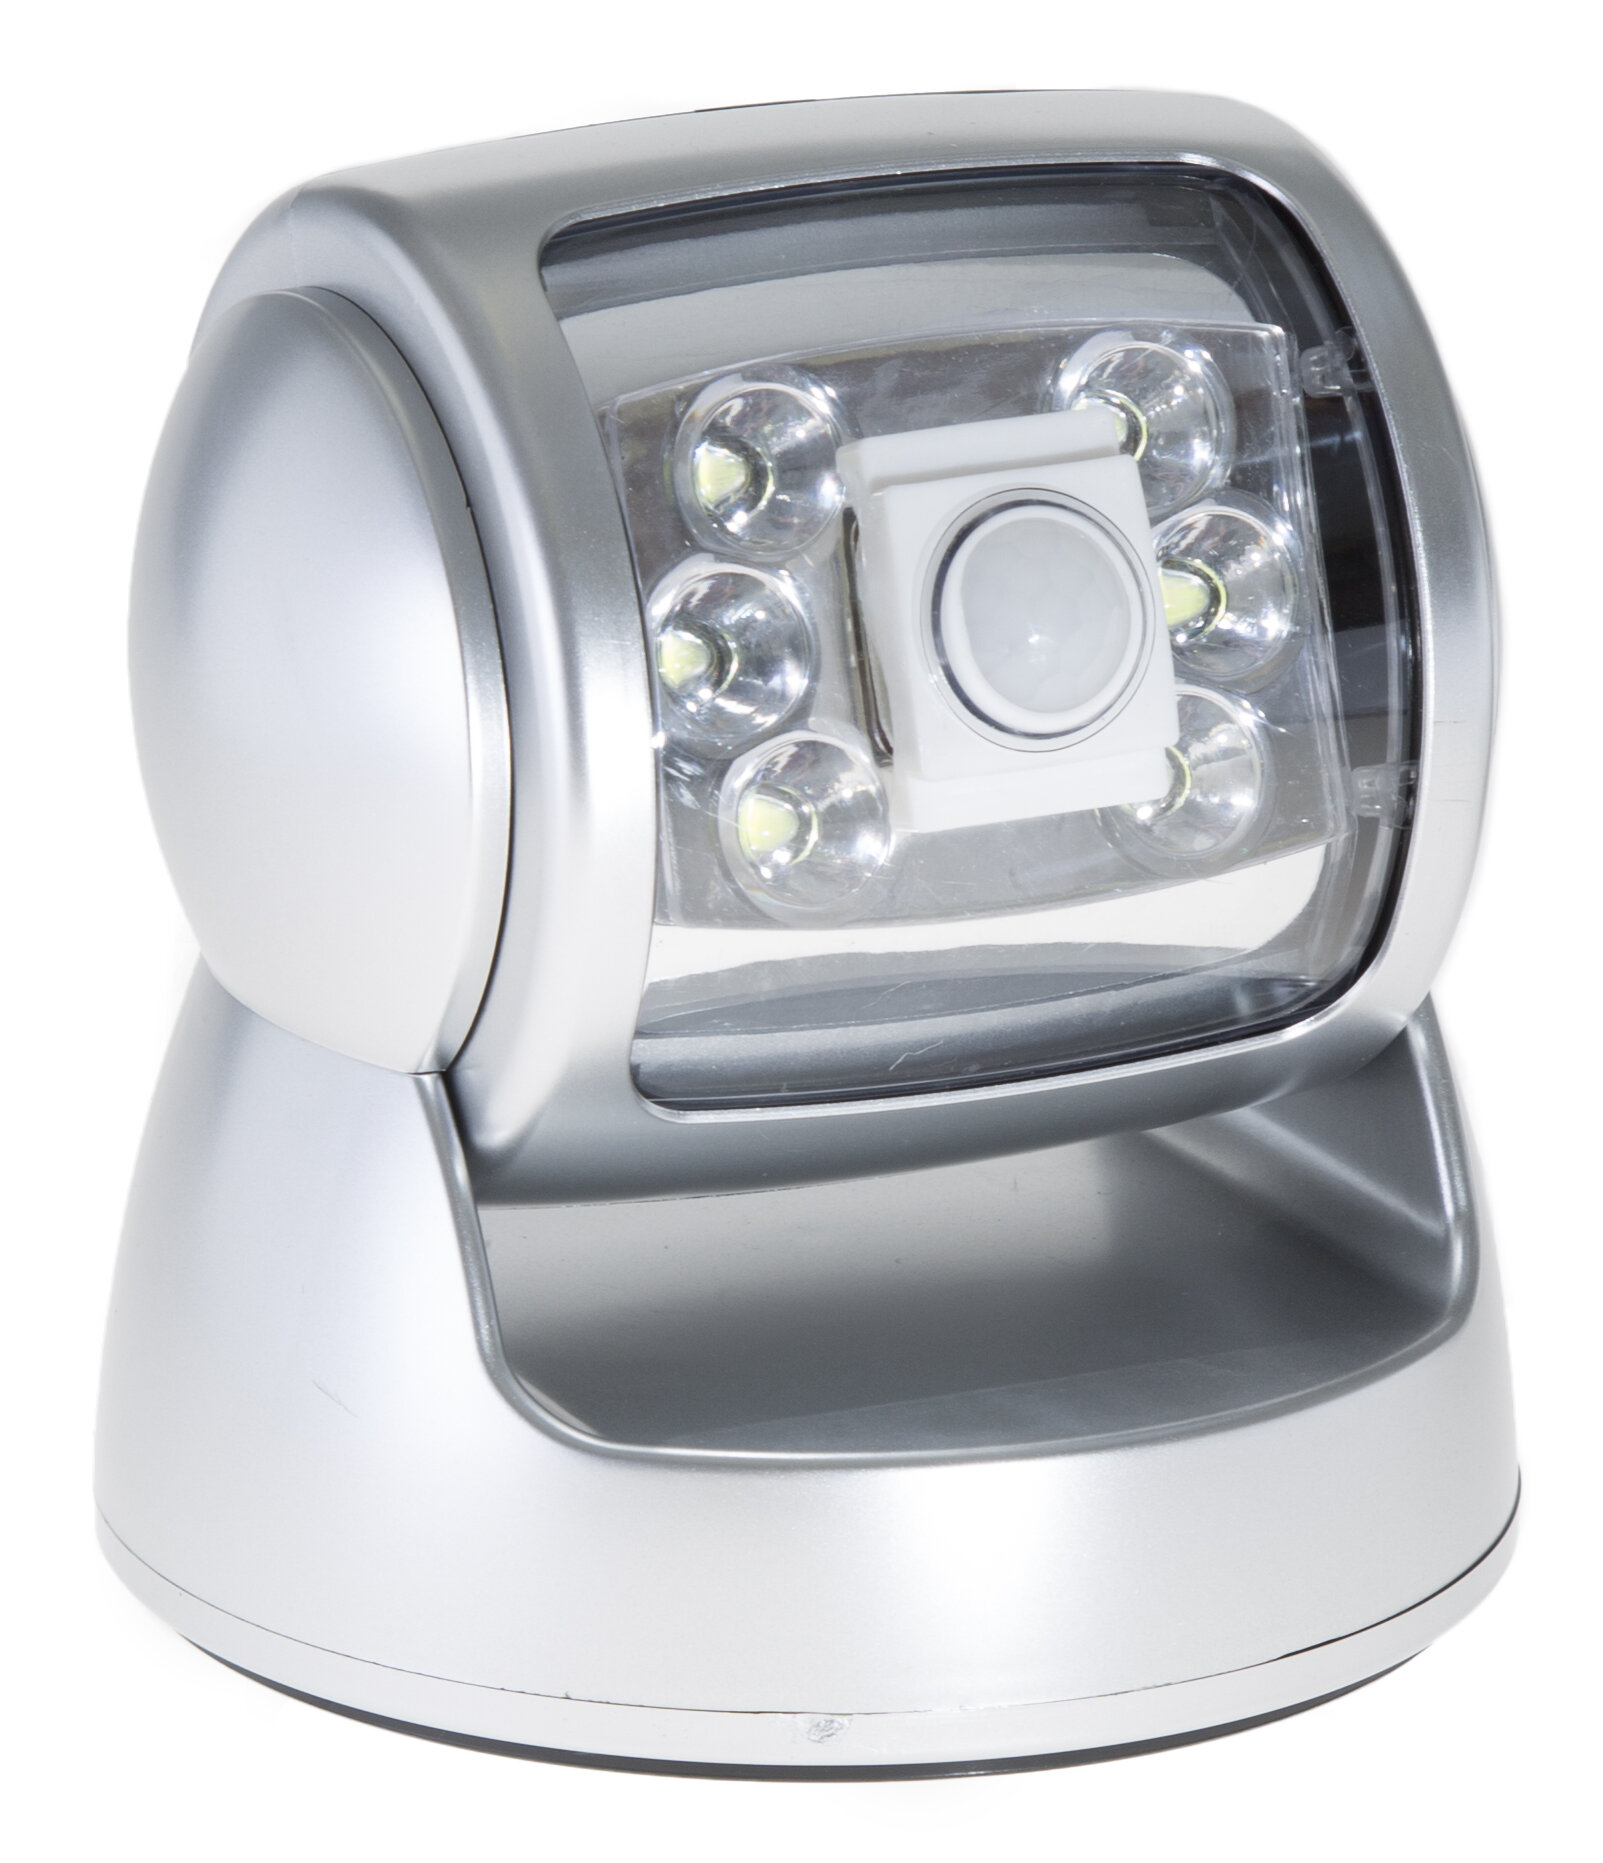 Everyday Home Battery Operated Outdoor Security Flood Light With Motion Sensor Reviews Wayfair